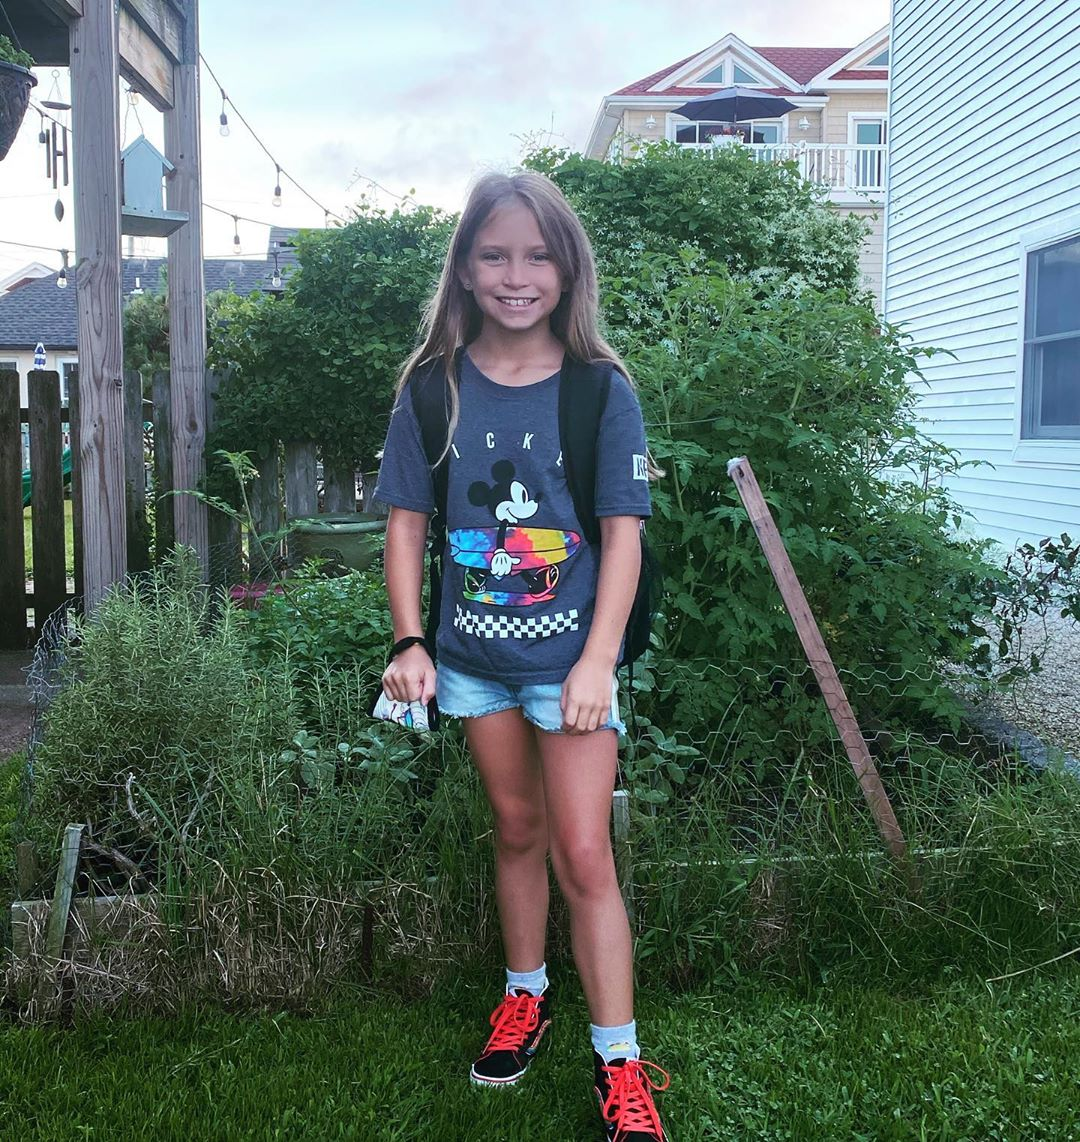 LBI First day of school!!! Hope our Mickey, surfing, taco loving girl has a great fi…